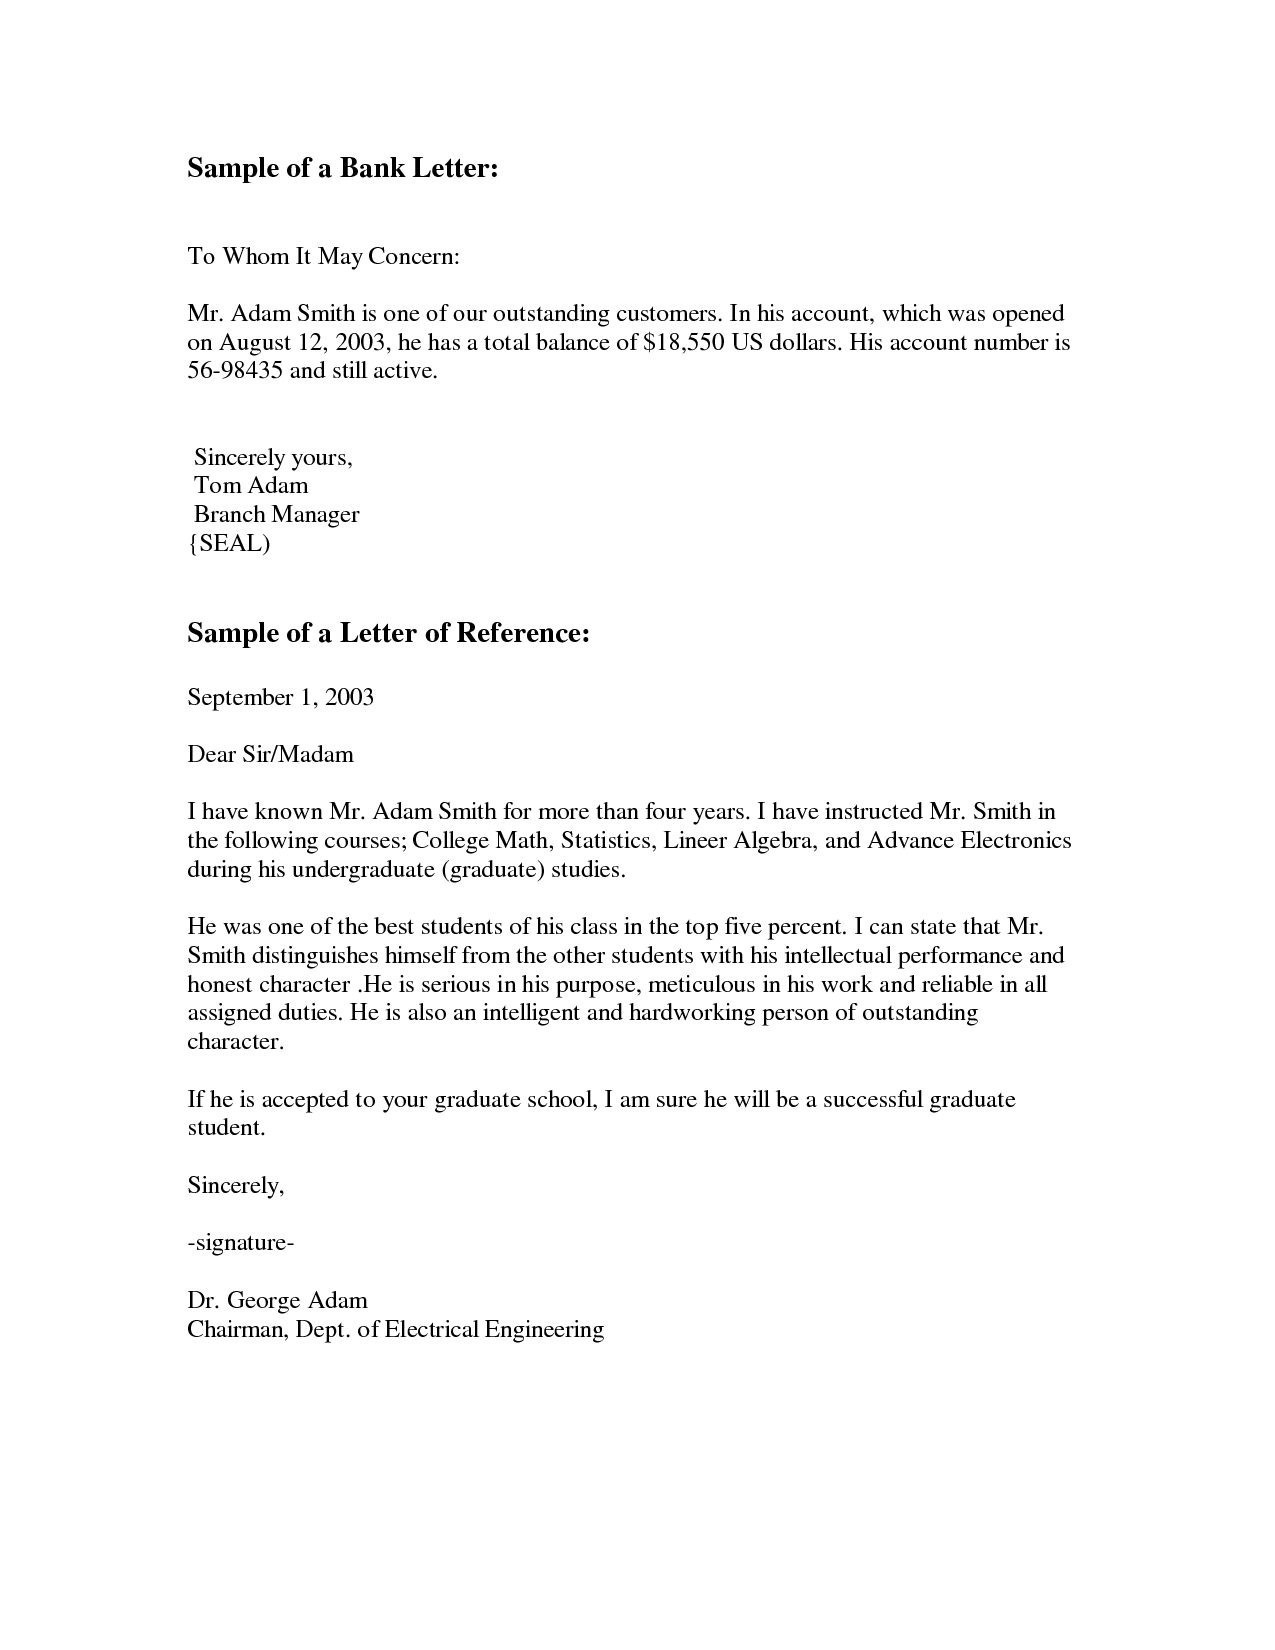 Customer Reference Letter Template - Writing A Letter Re Mendation for A Student for A Job Save